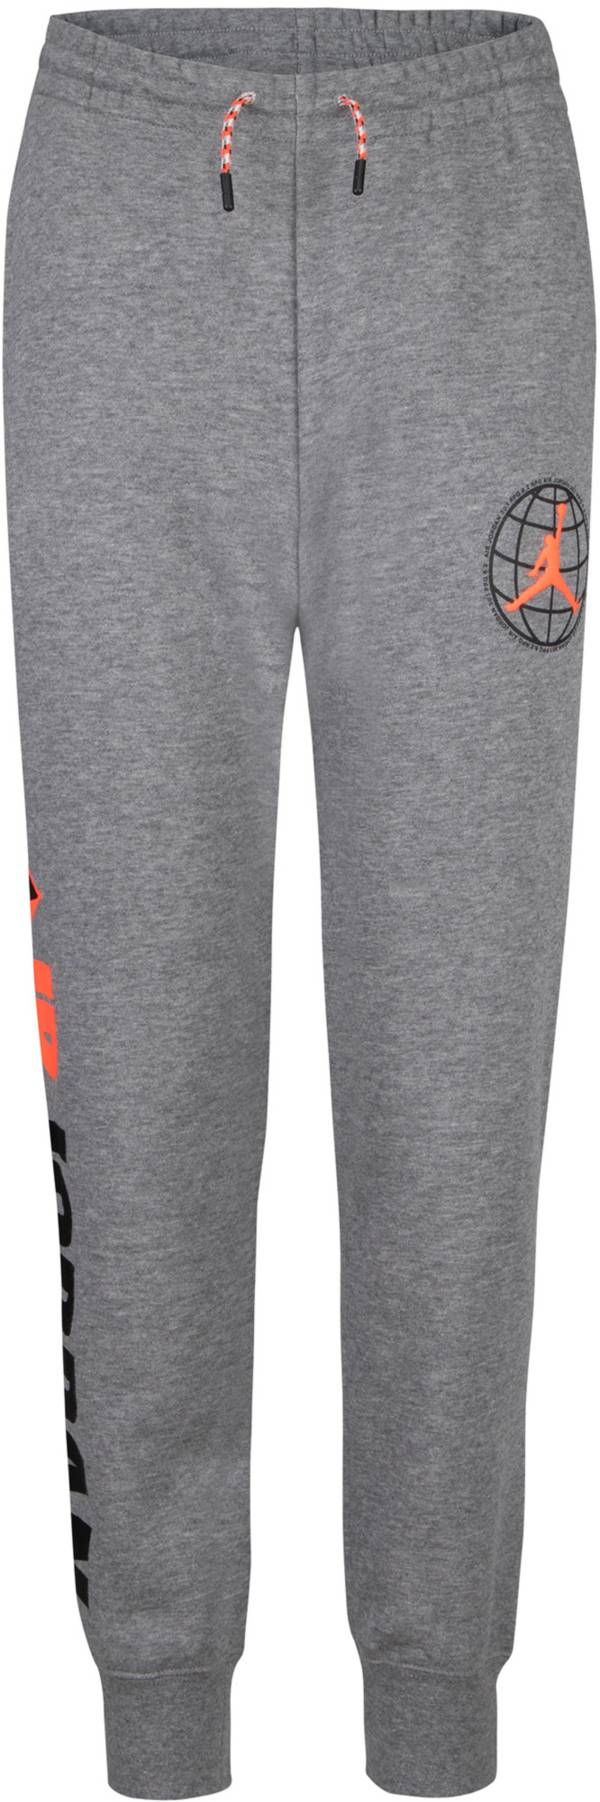 Jordan Boys' Mountainside Fleece Jogger Pants product image